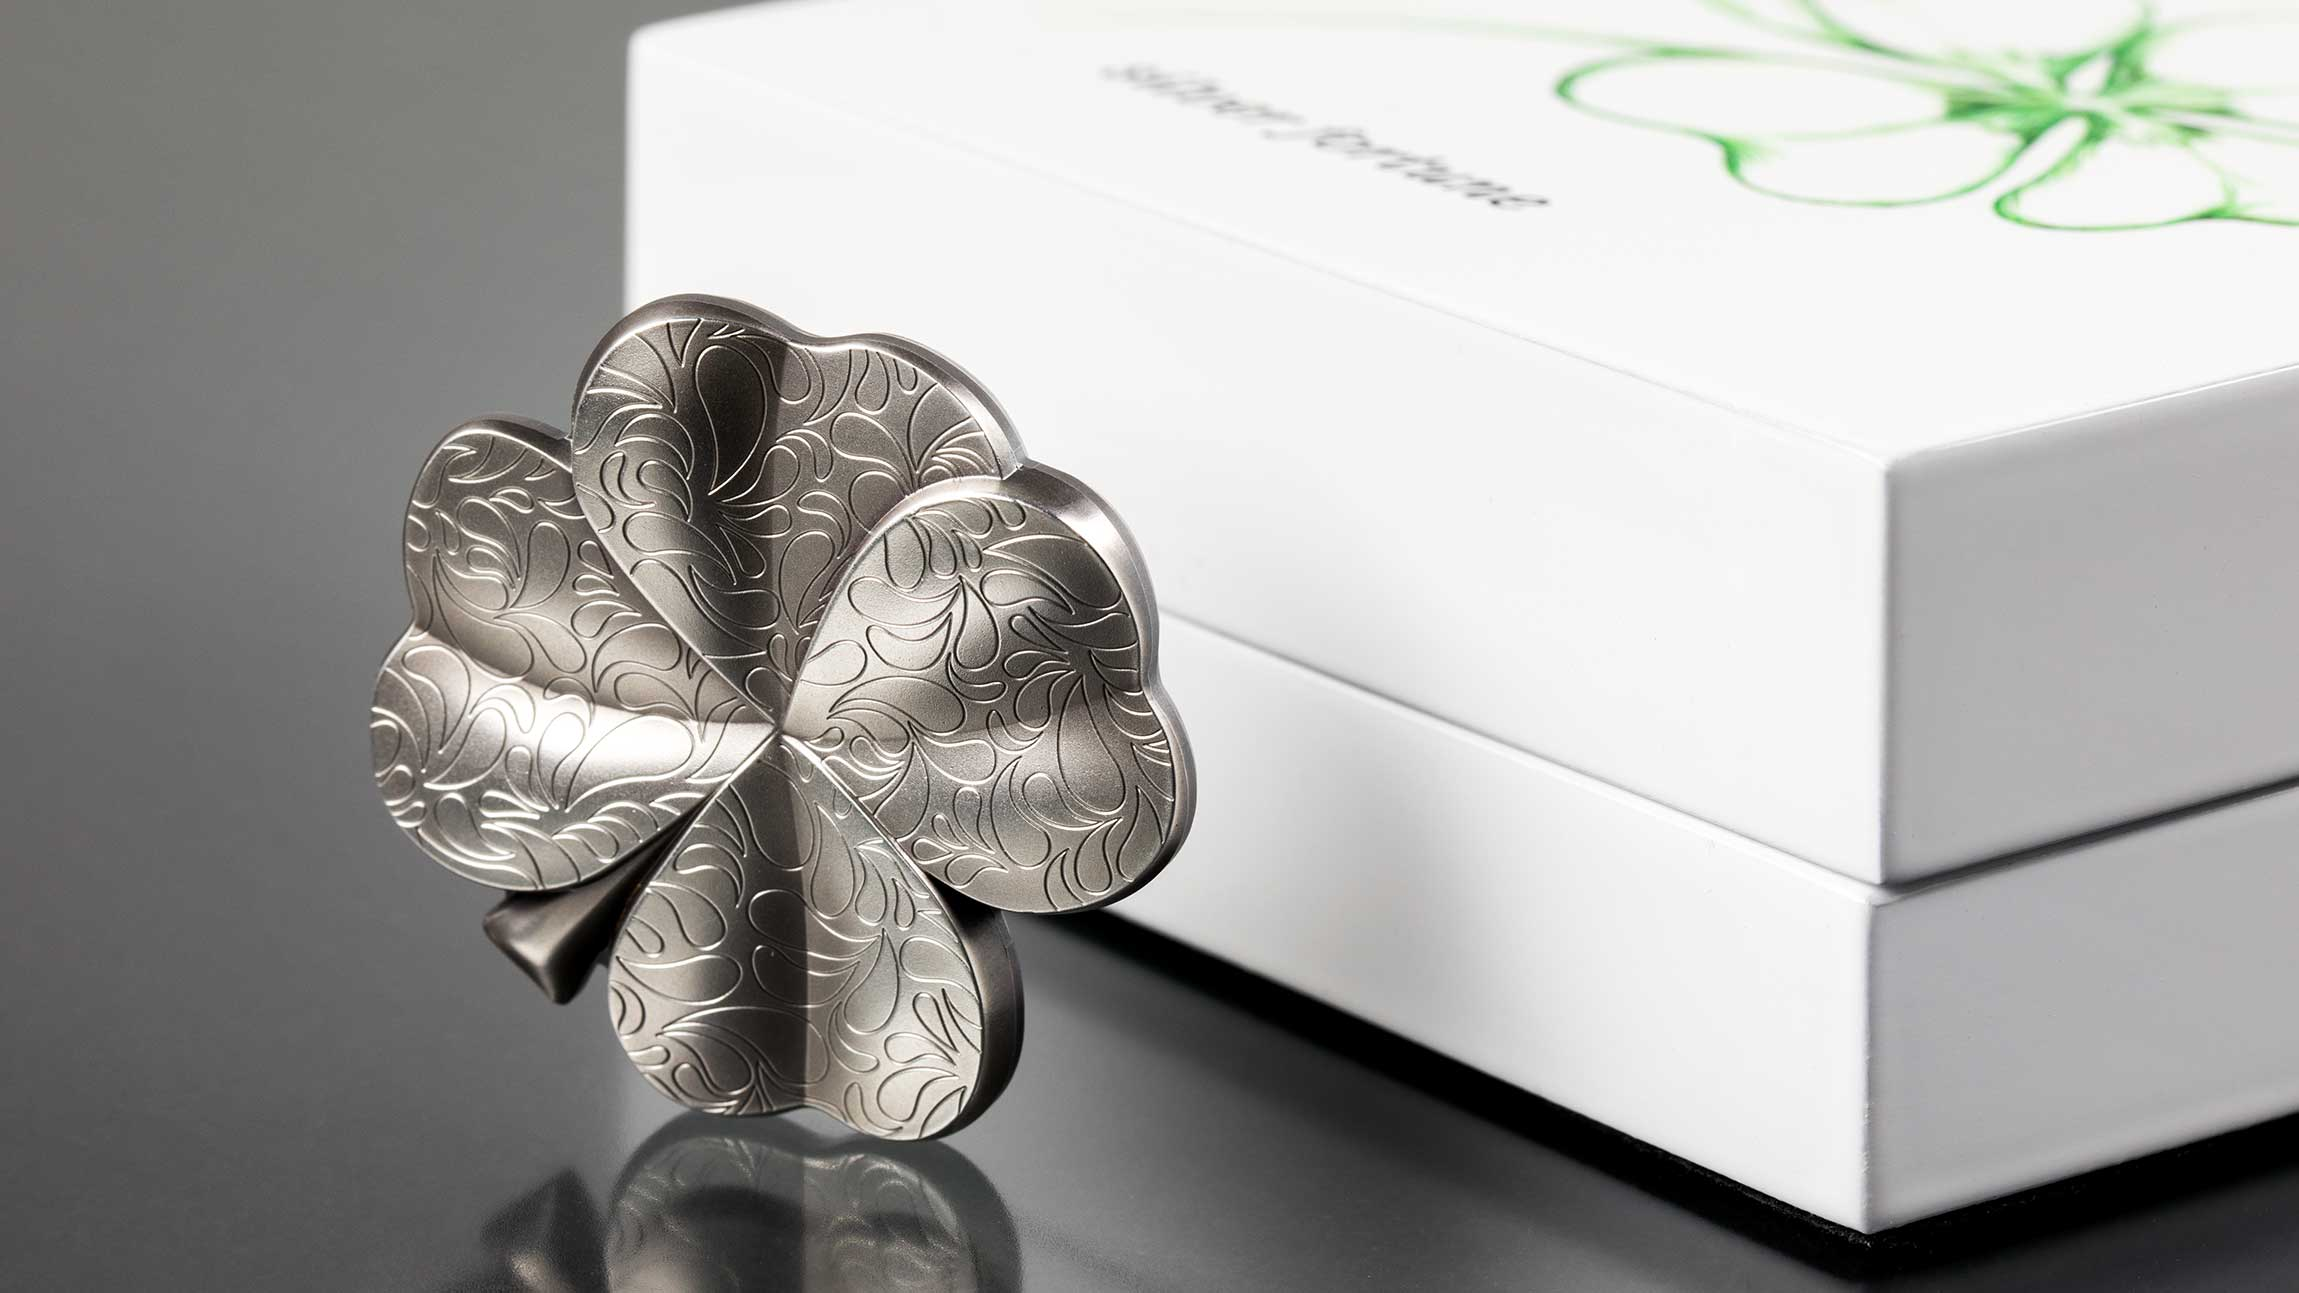 Silver fortune unique shape four leaf clover silver coin by CIT with smartminting, modern numismatics